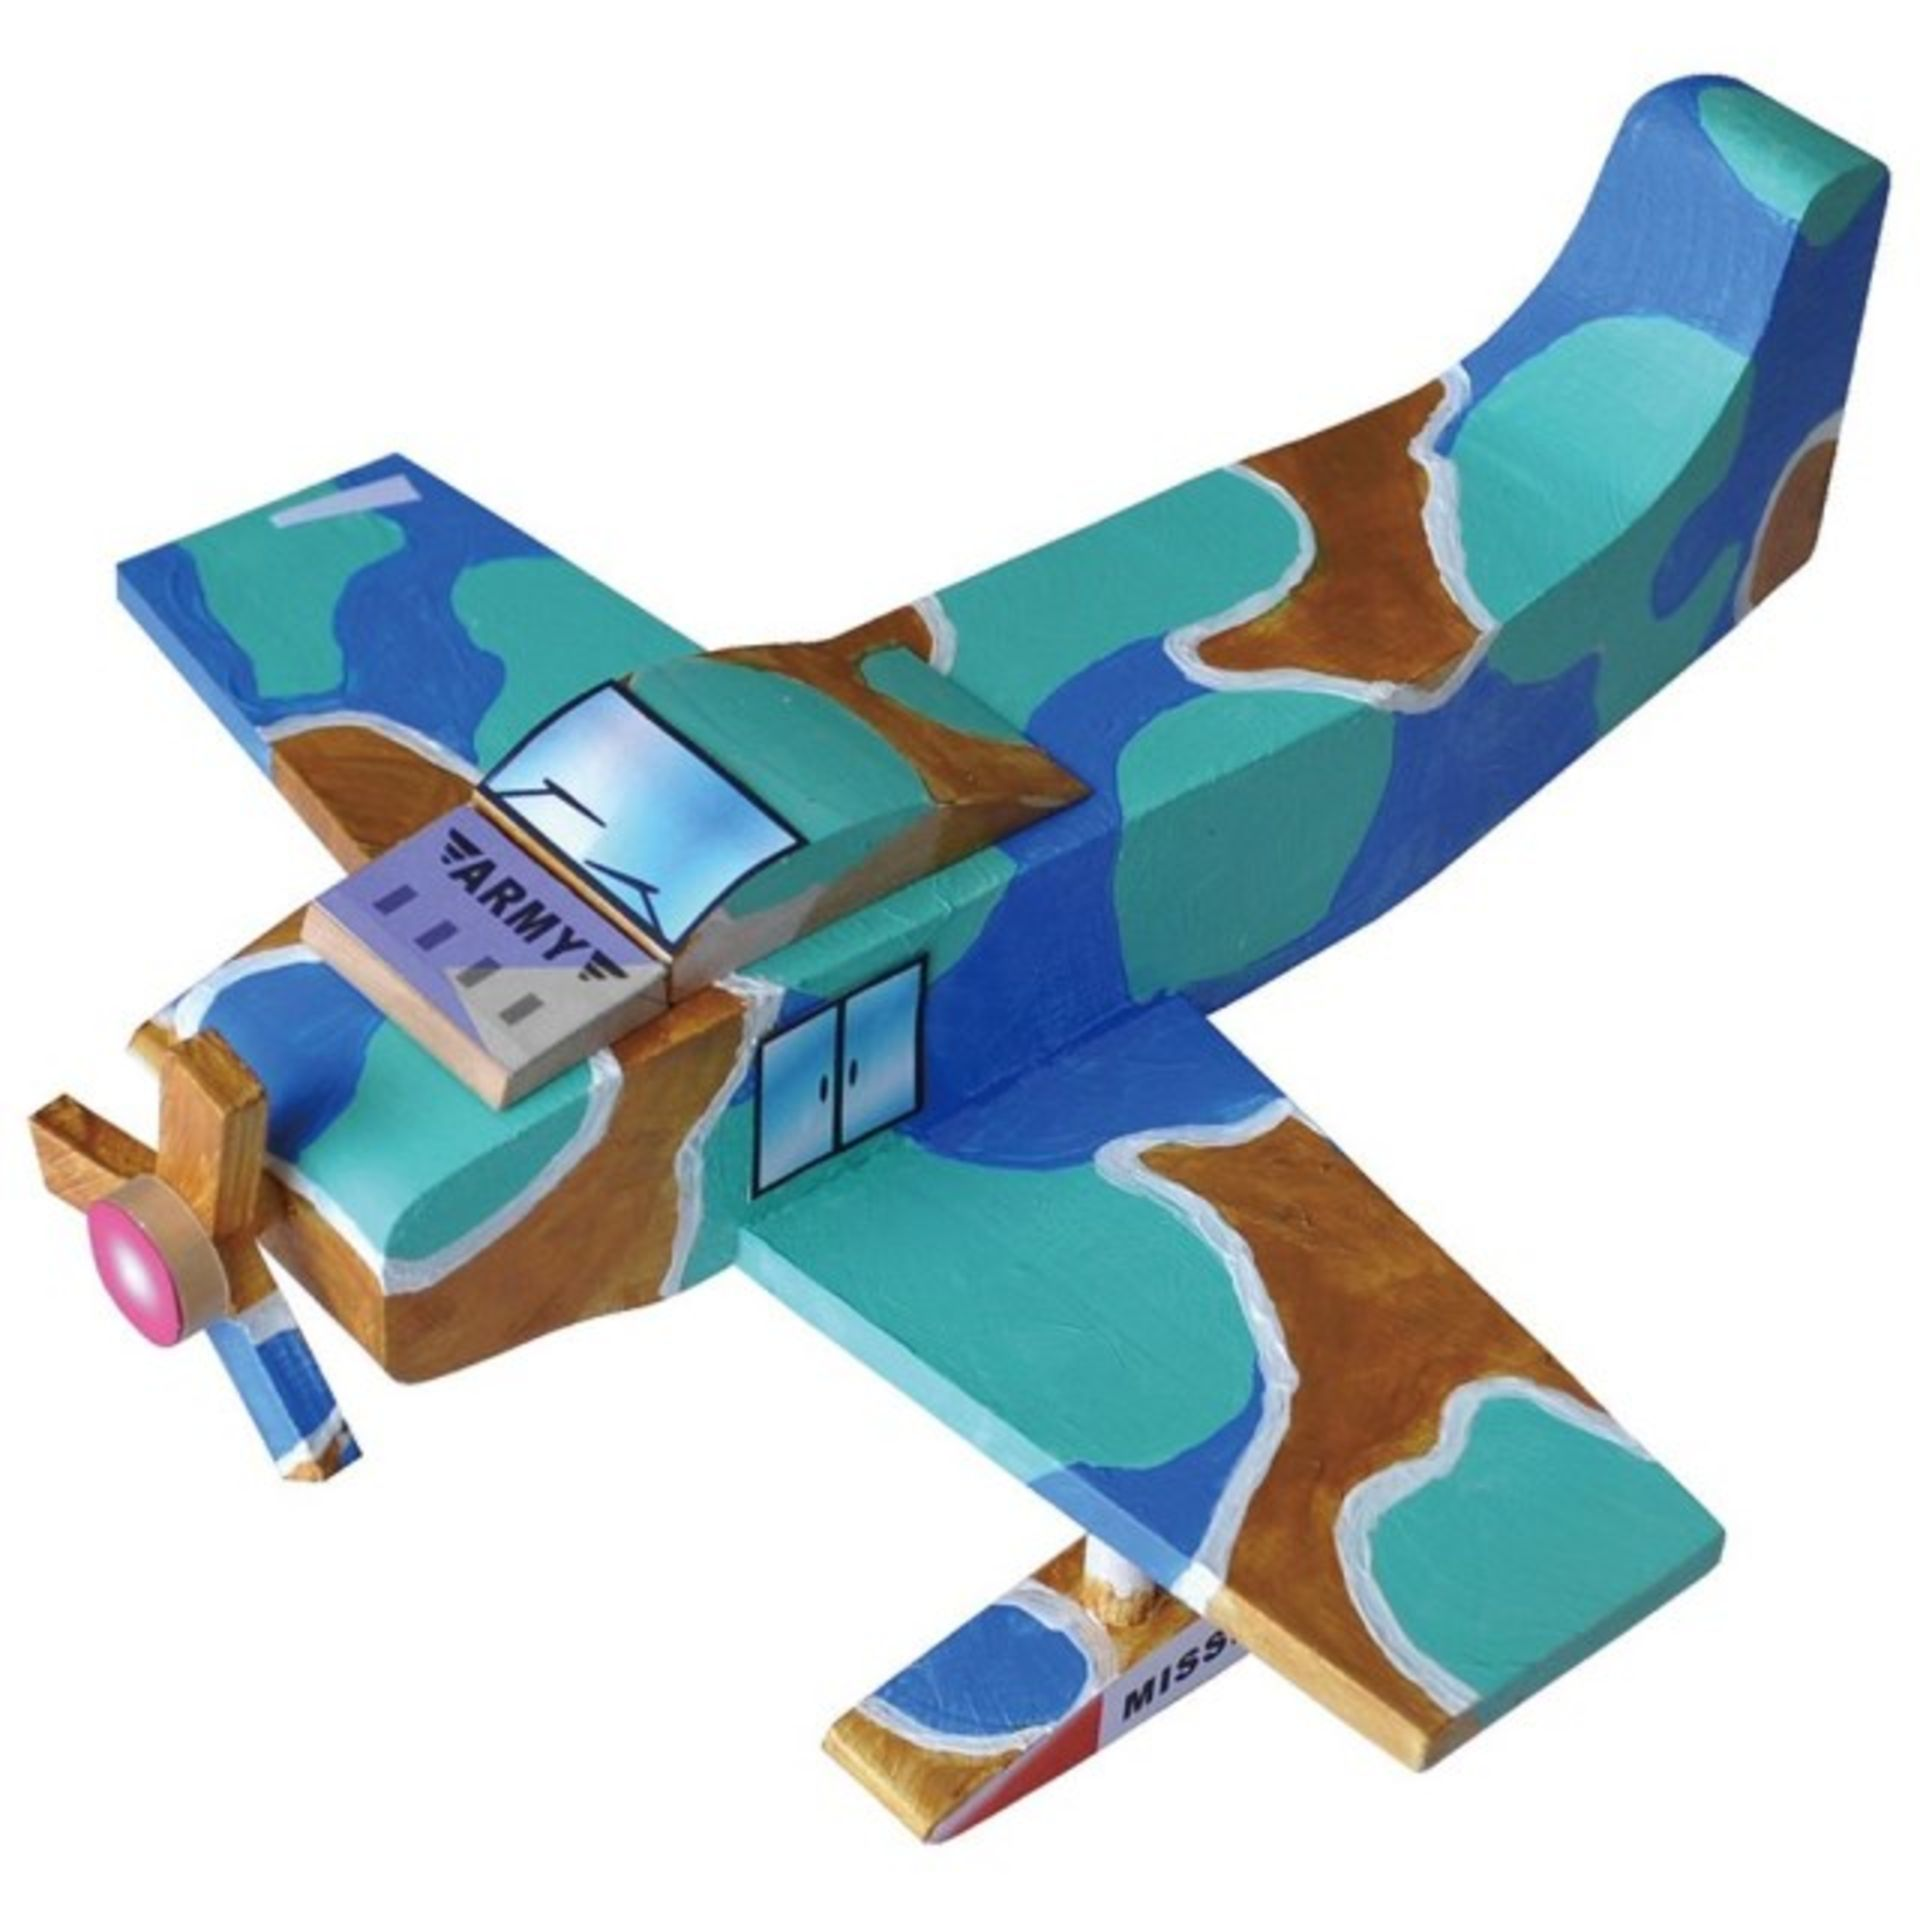 Lot 10330 - V Brand New Make Your Own Wooden Plane Set inc Acrylic Paint - Brush - Glue - Stickers RRP £29.99